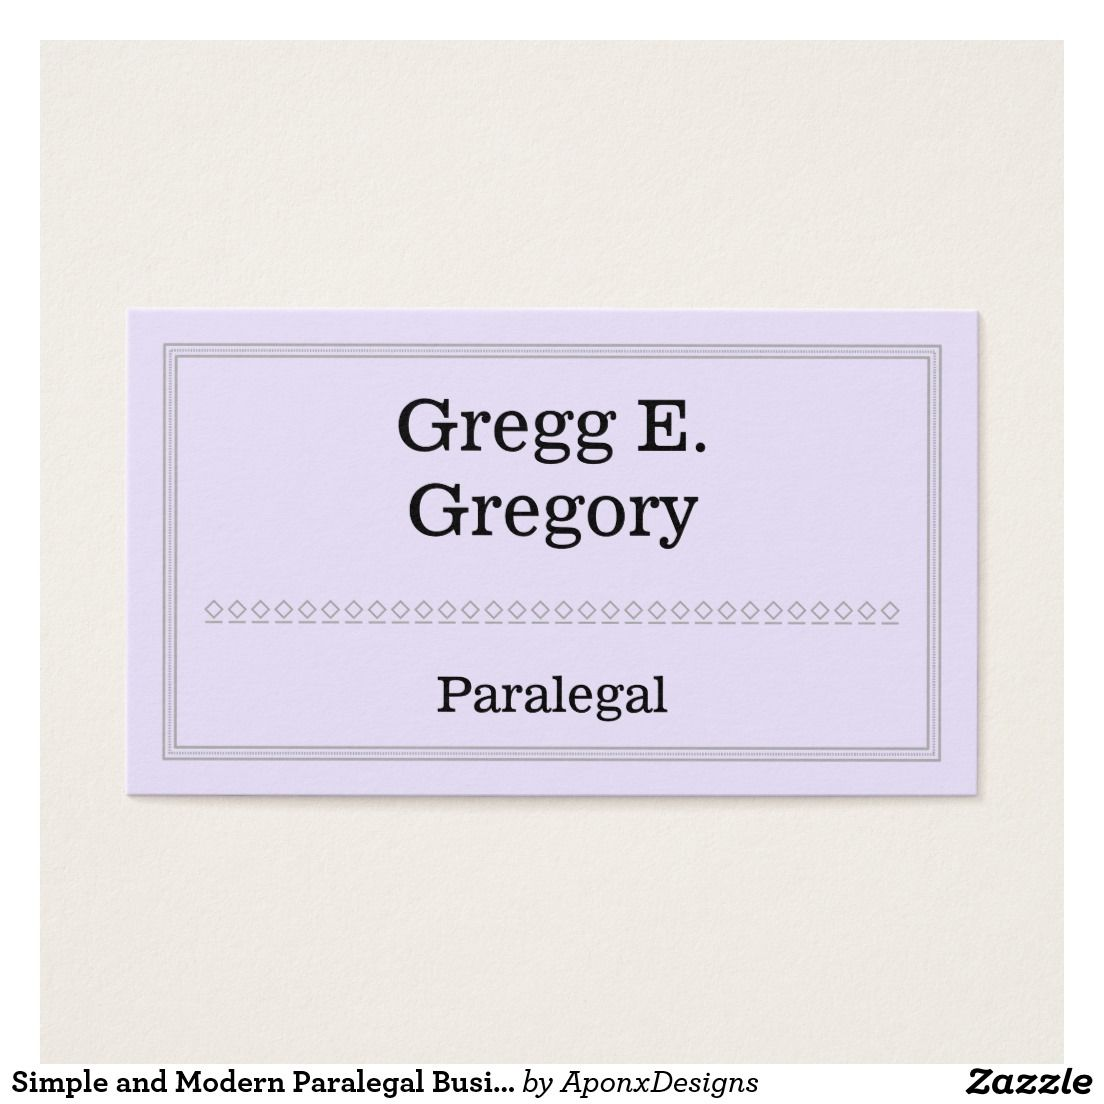 Simple and Modern Paralegal Business Card   Customizable Business ...